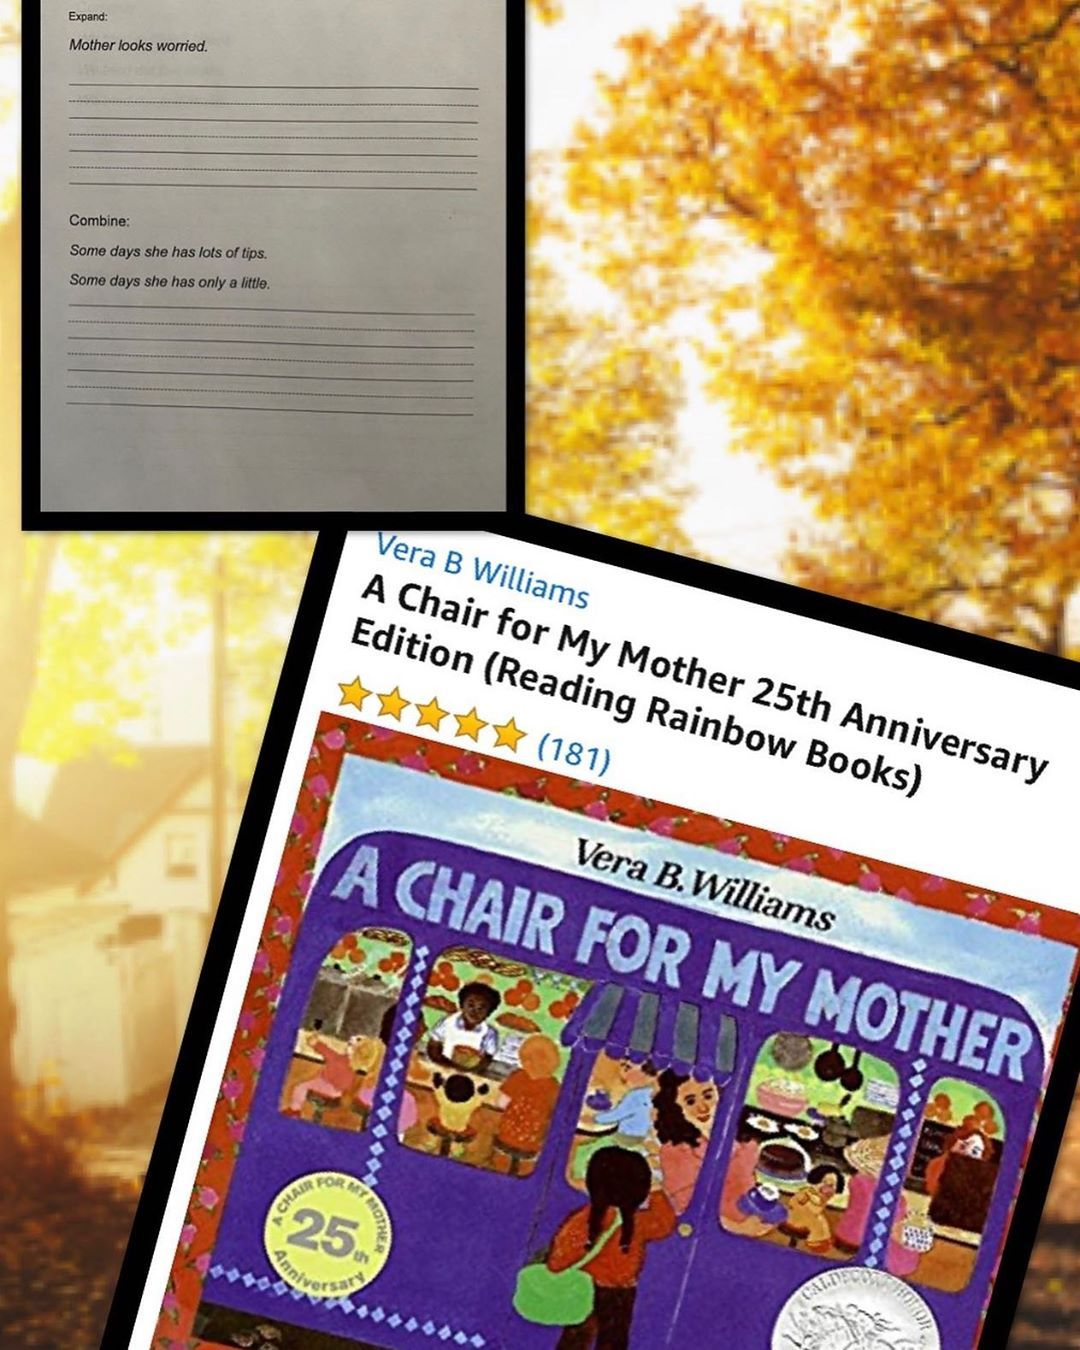 A chair for my mother in 2020 mother books reading